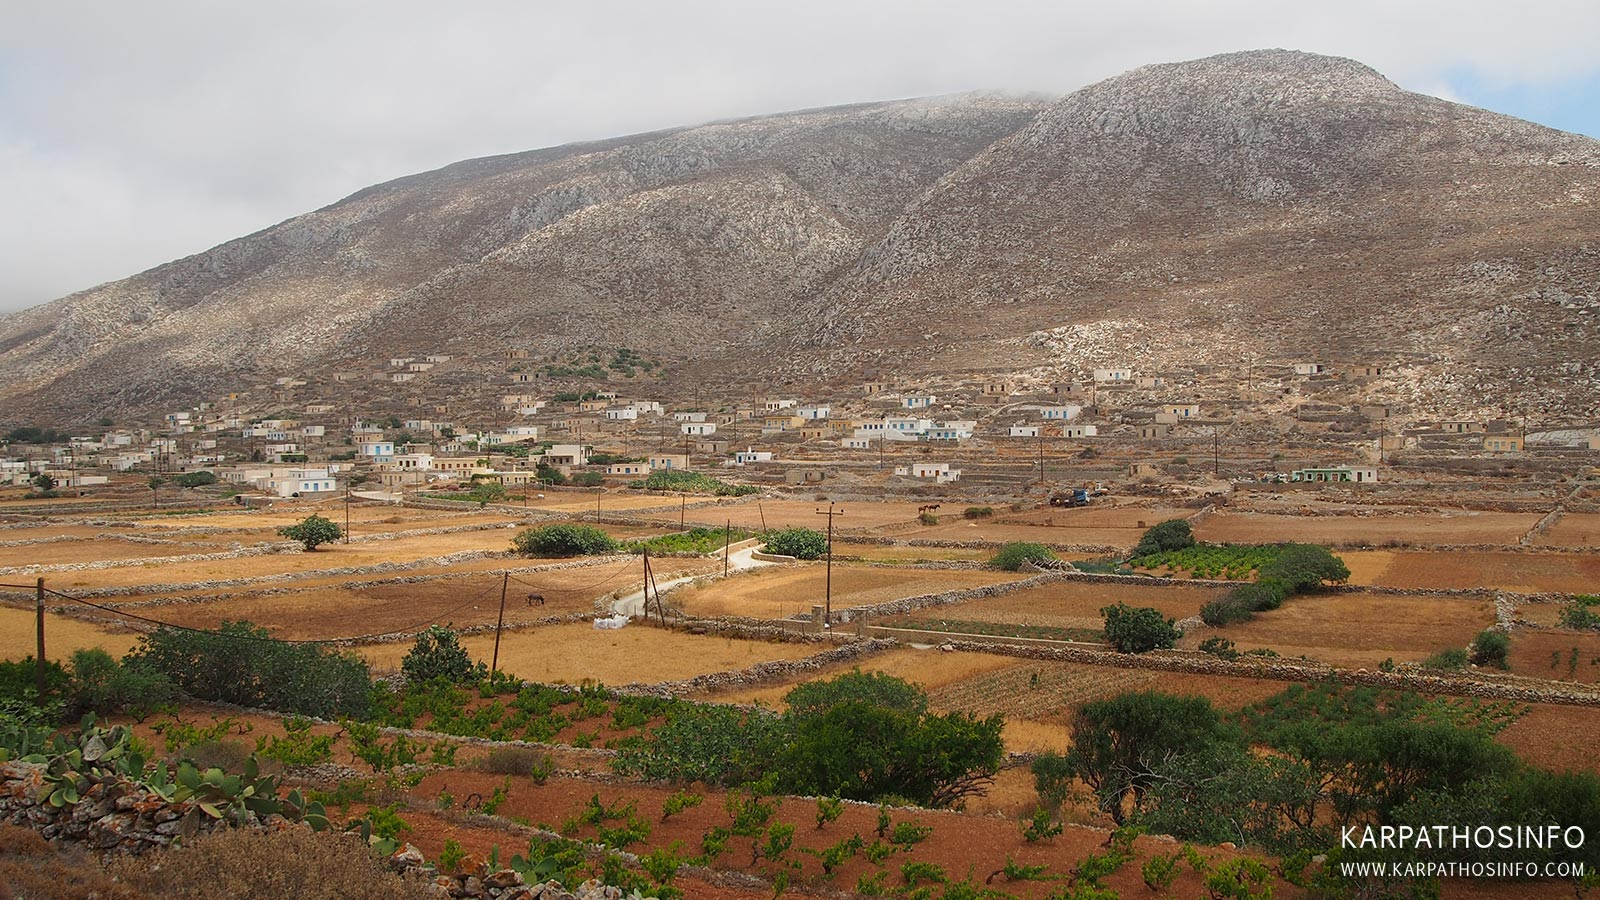 images/slider/avlona-village-north-karpathos.jpg